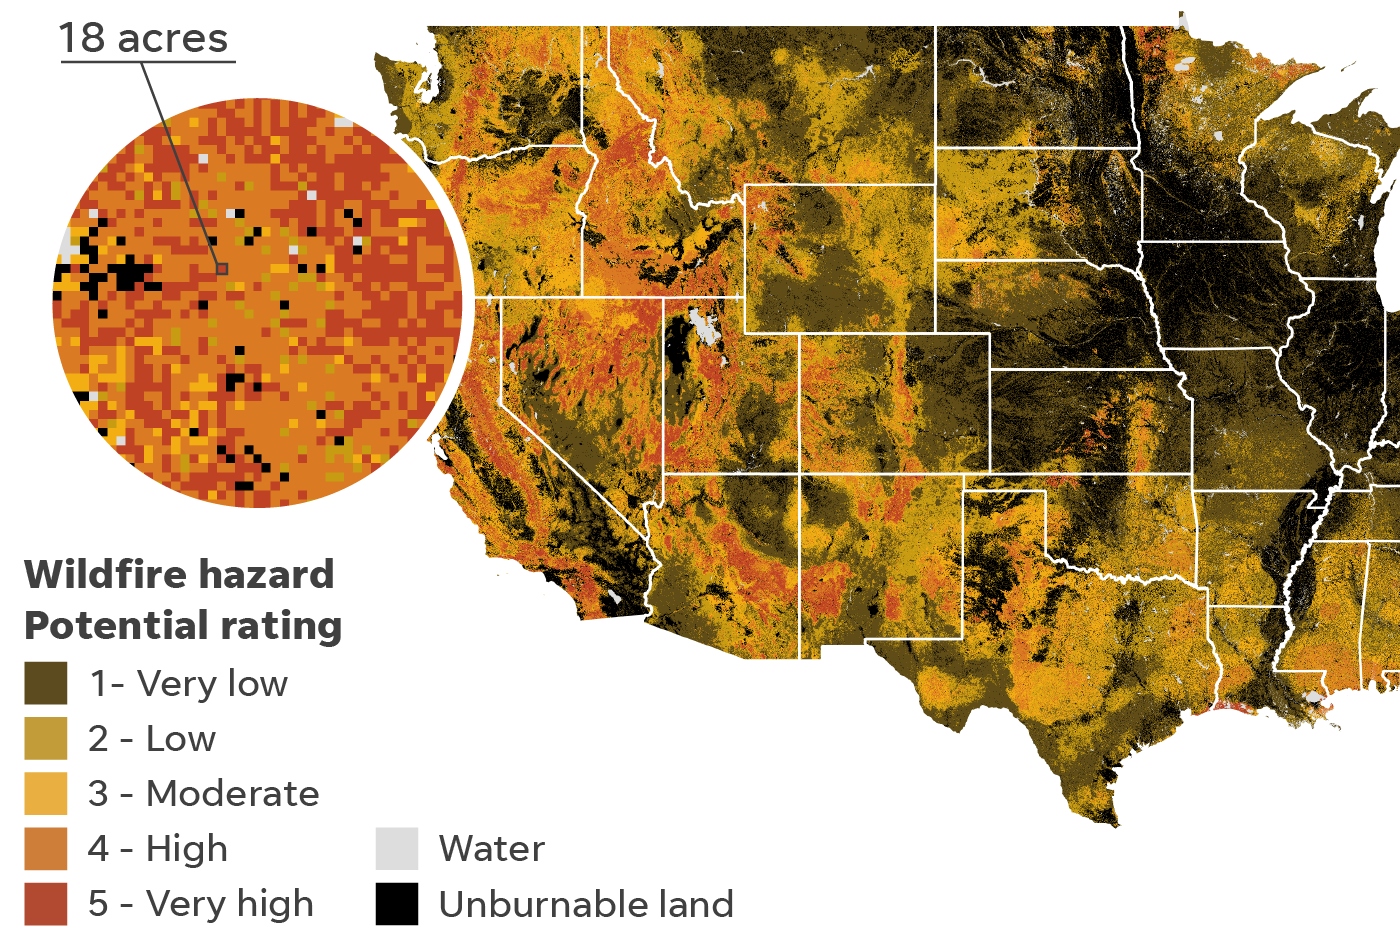 U.S. Forest service data shows wildfire hazard across the country.